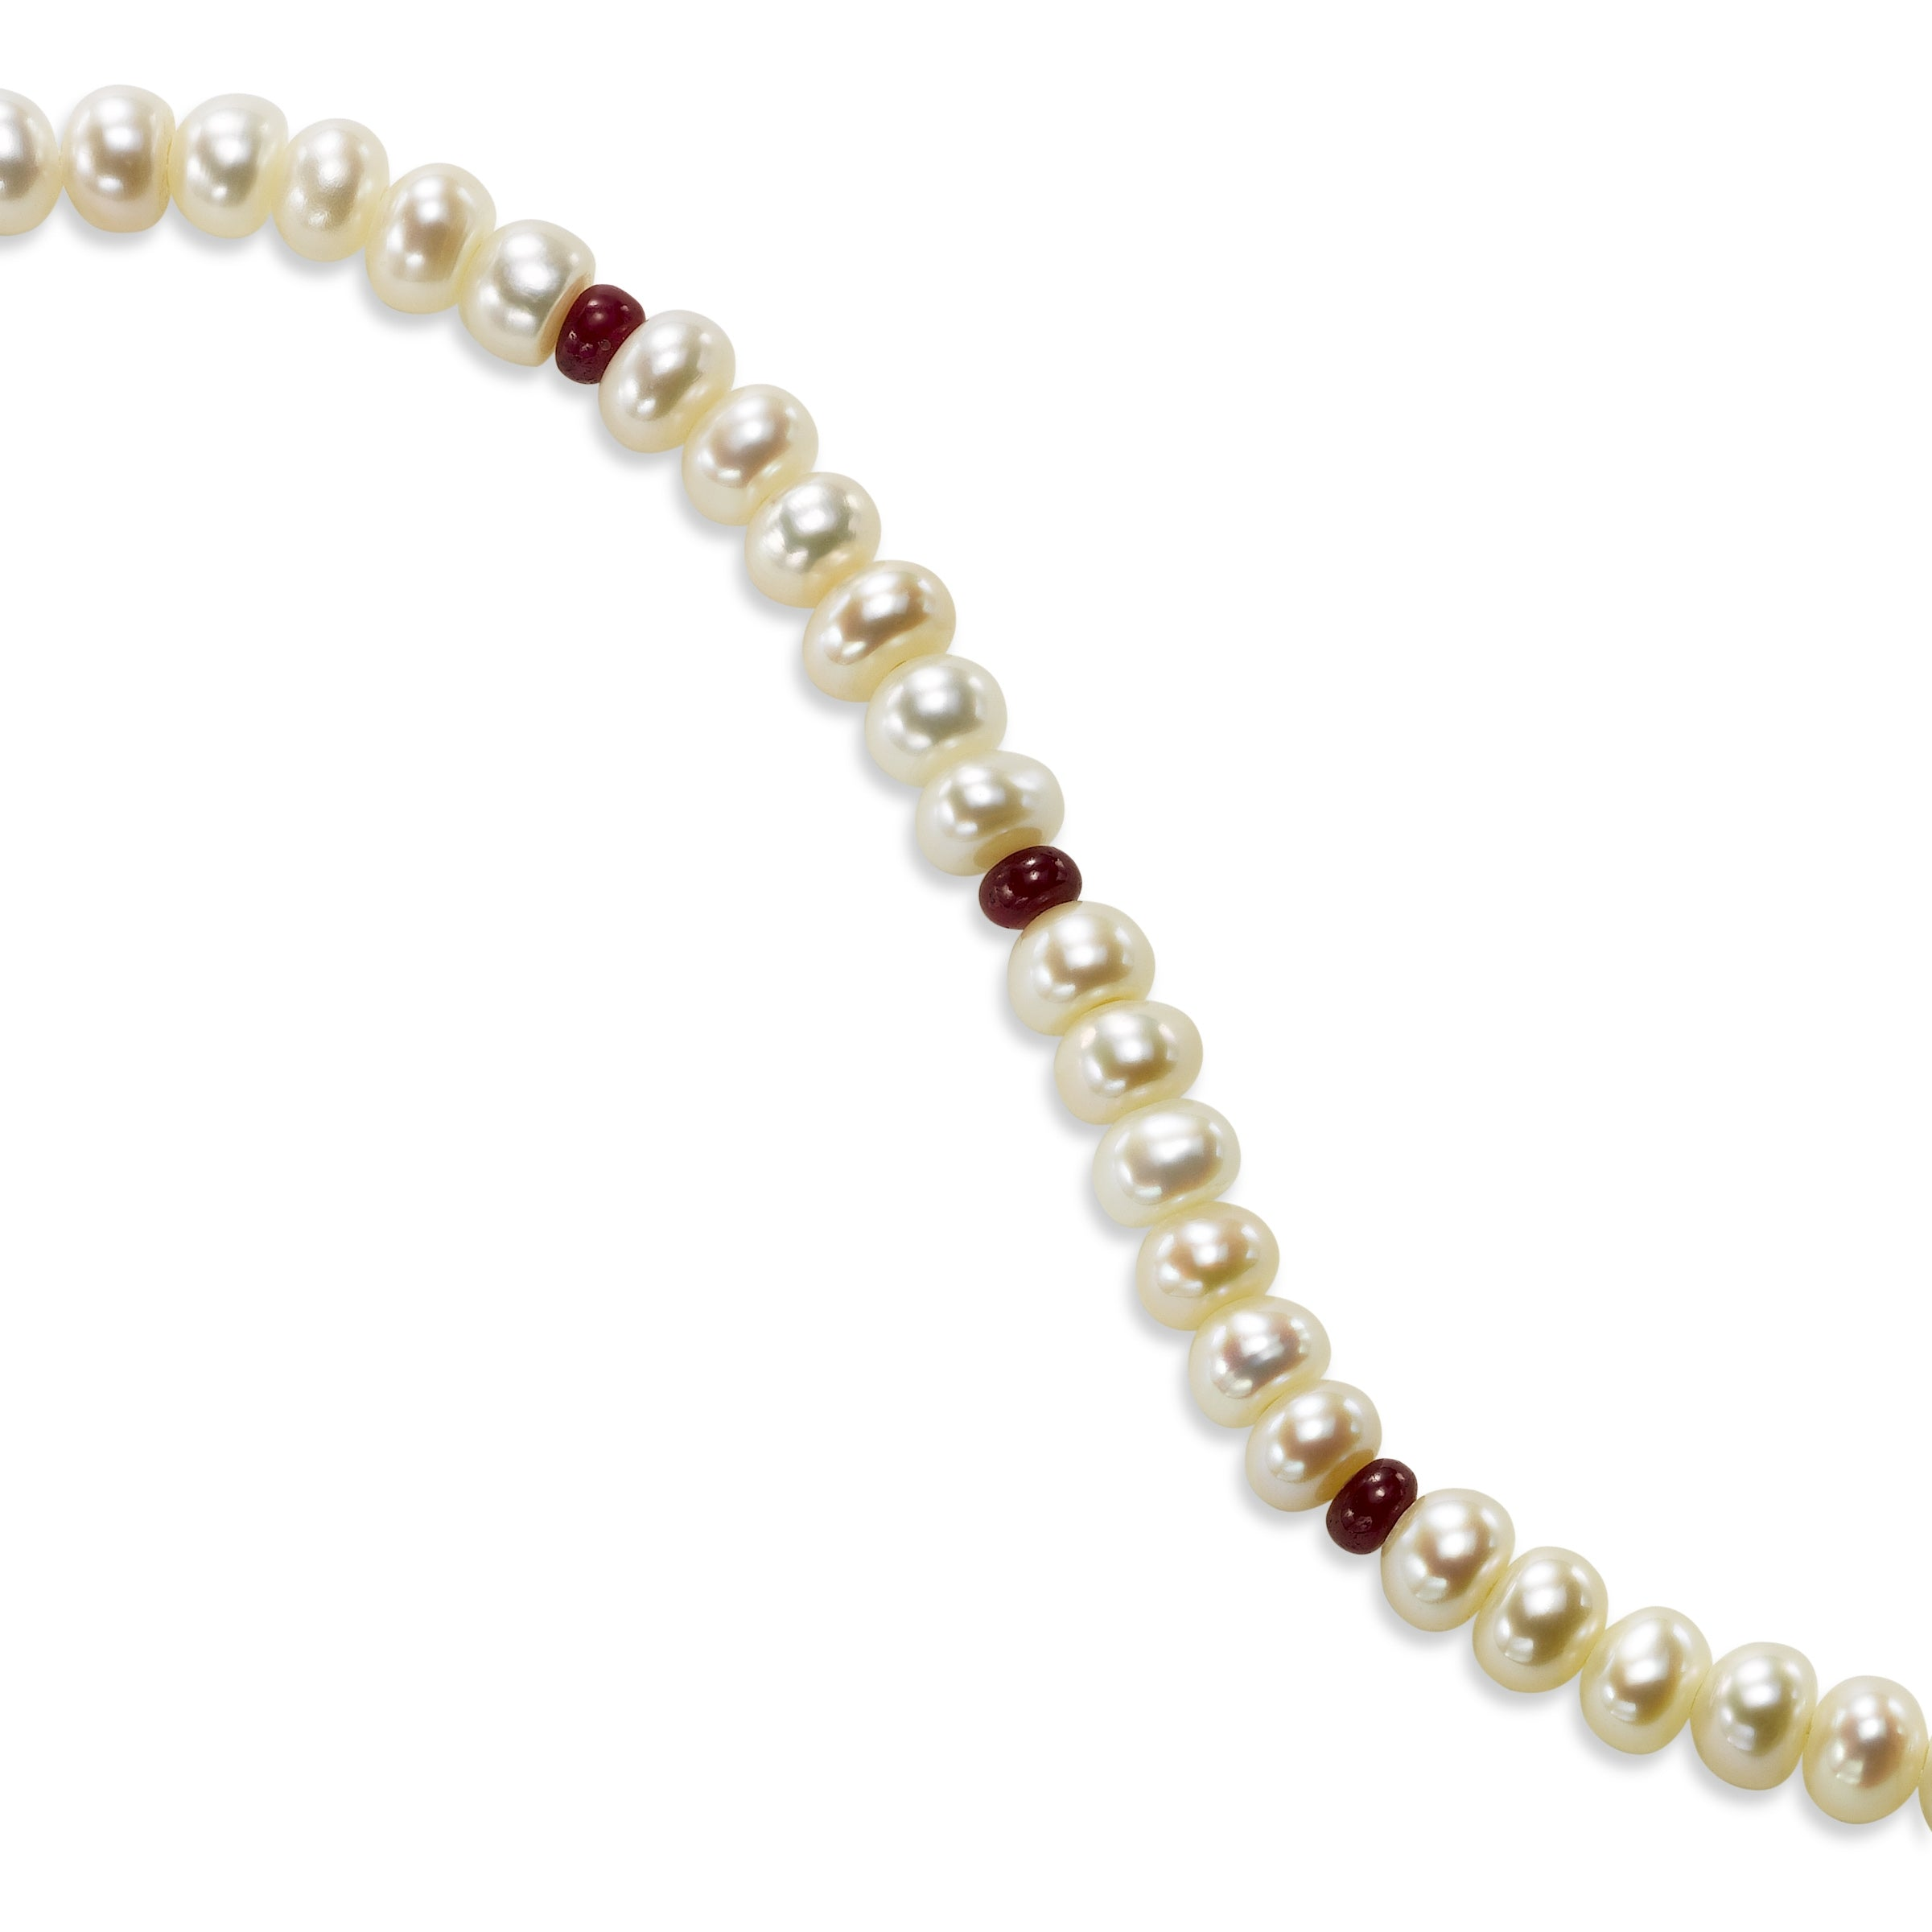 37013a311f31b Freshwater Cultured Pearl and Garnet Bracelet, Sterling Silver